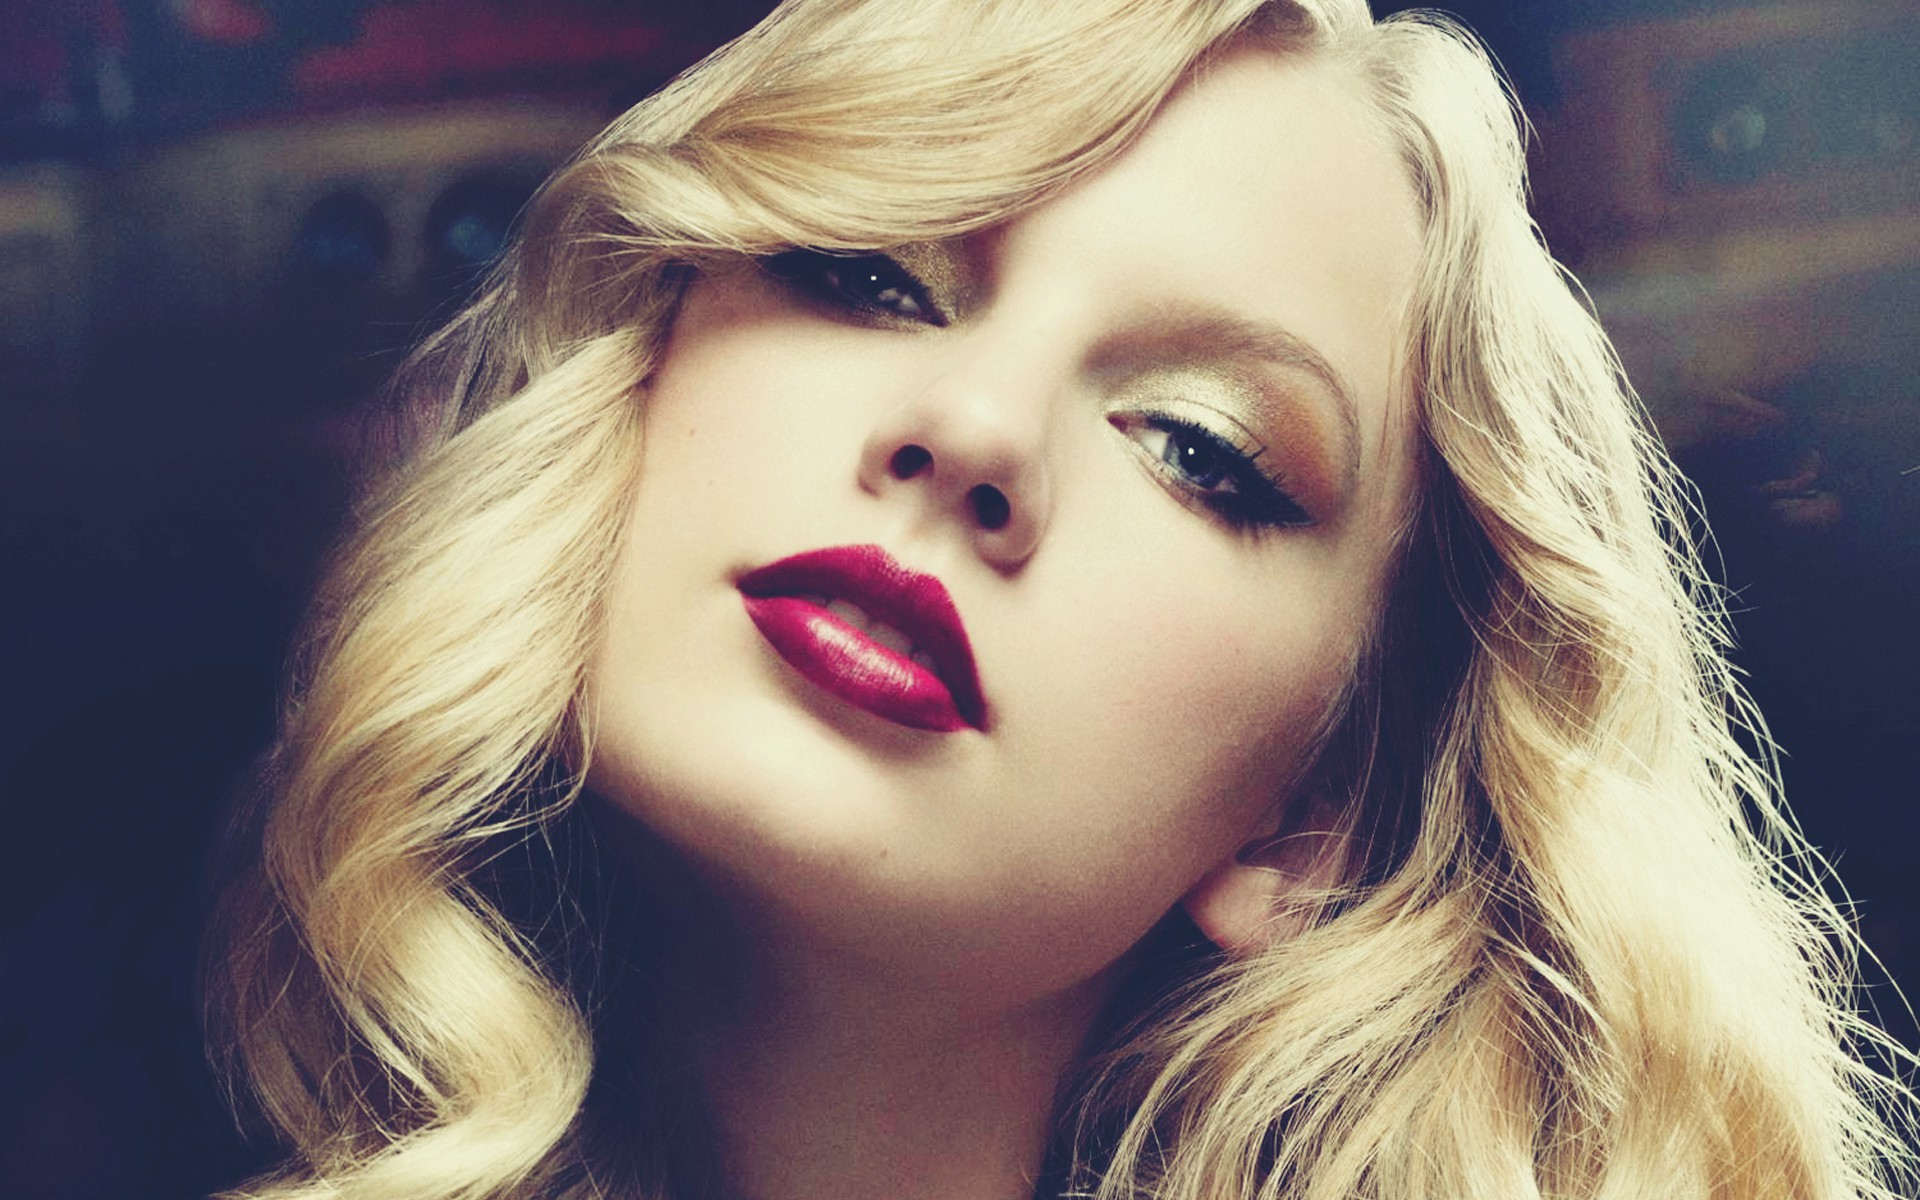 Taylor Swift Beautiful Face 2017 Wallpapers   New HD 1920x1200